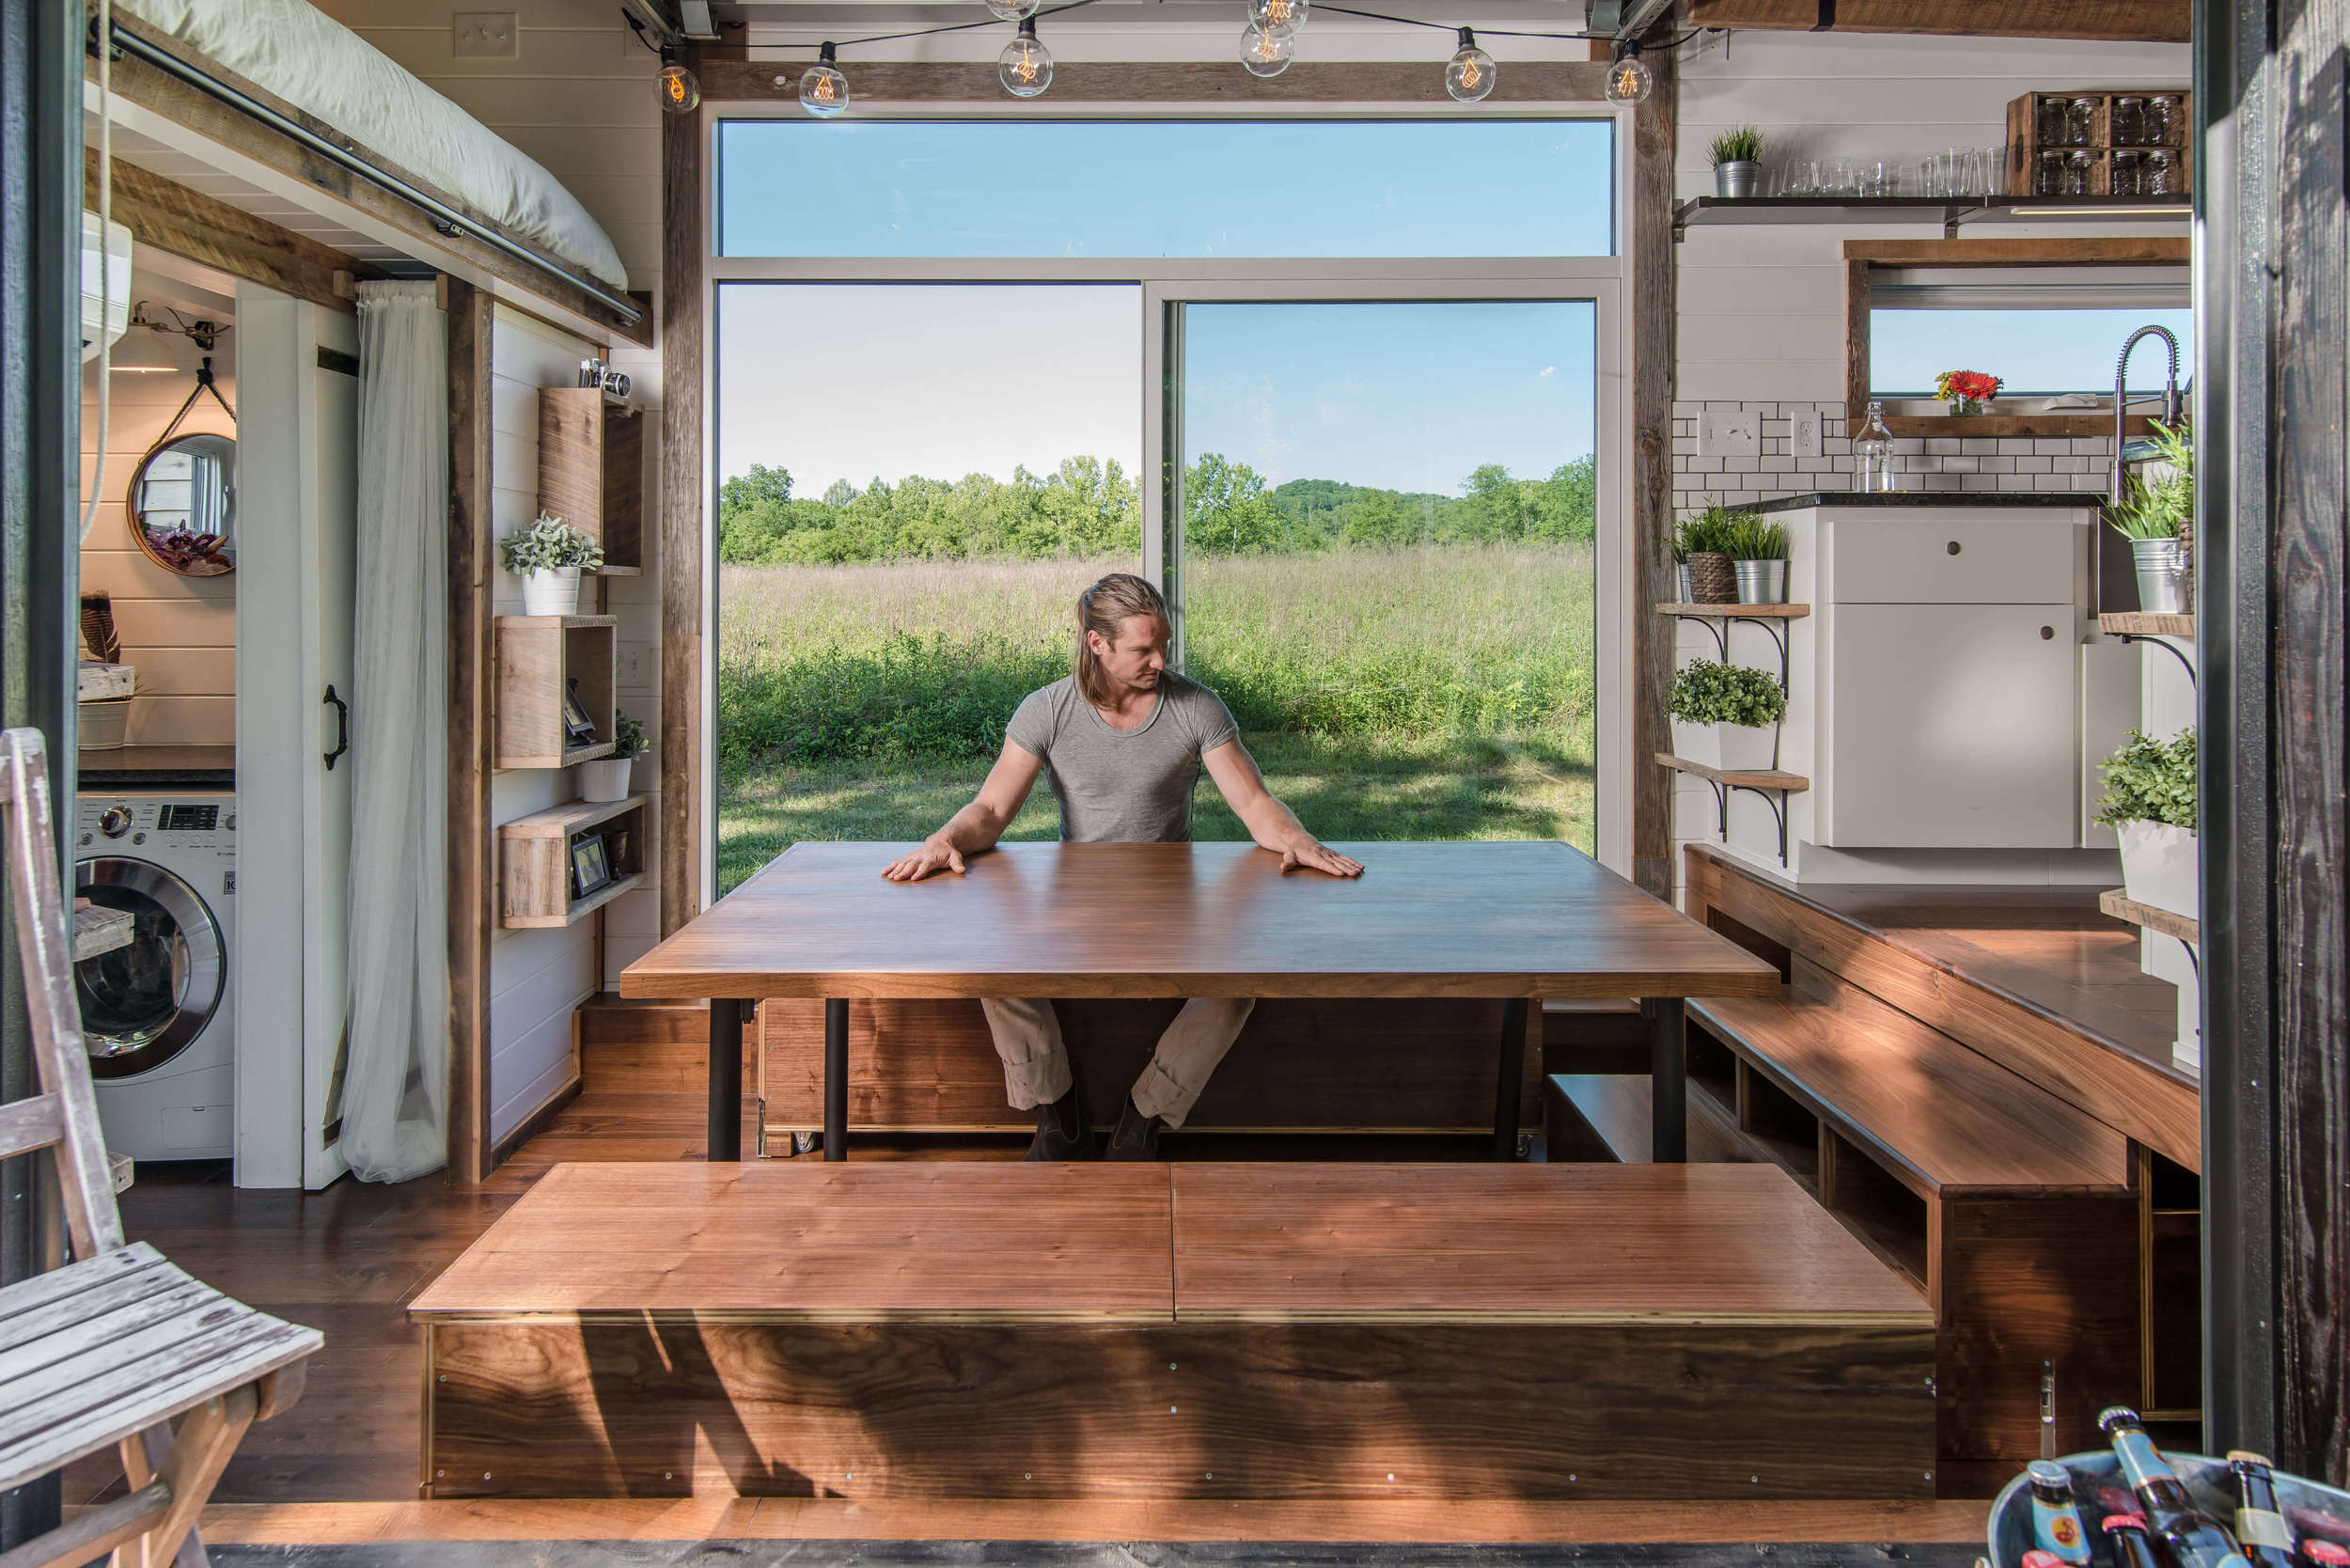 Image via New Frontier Tiny Houses